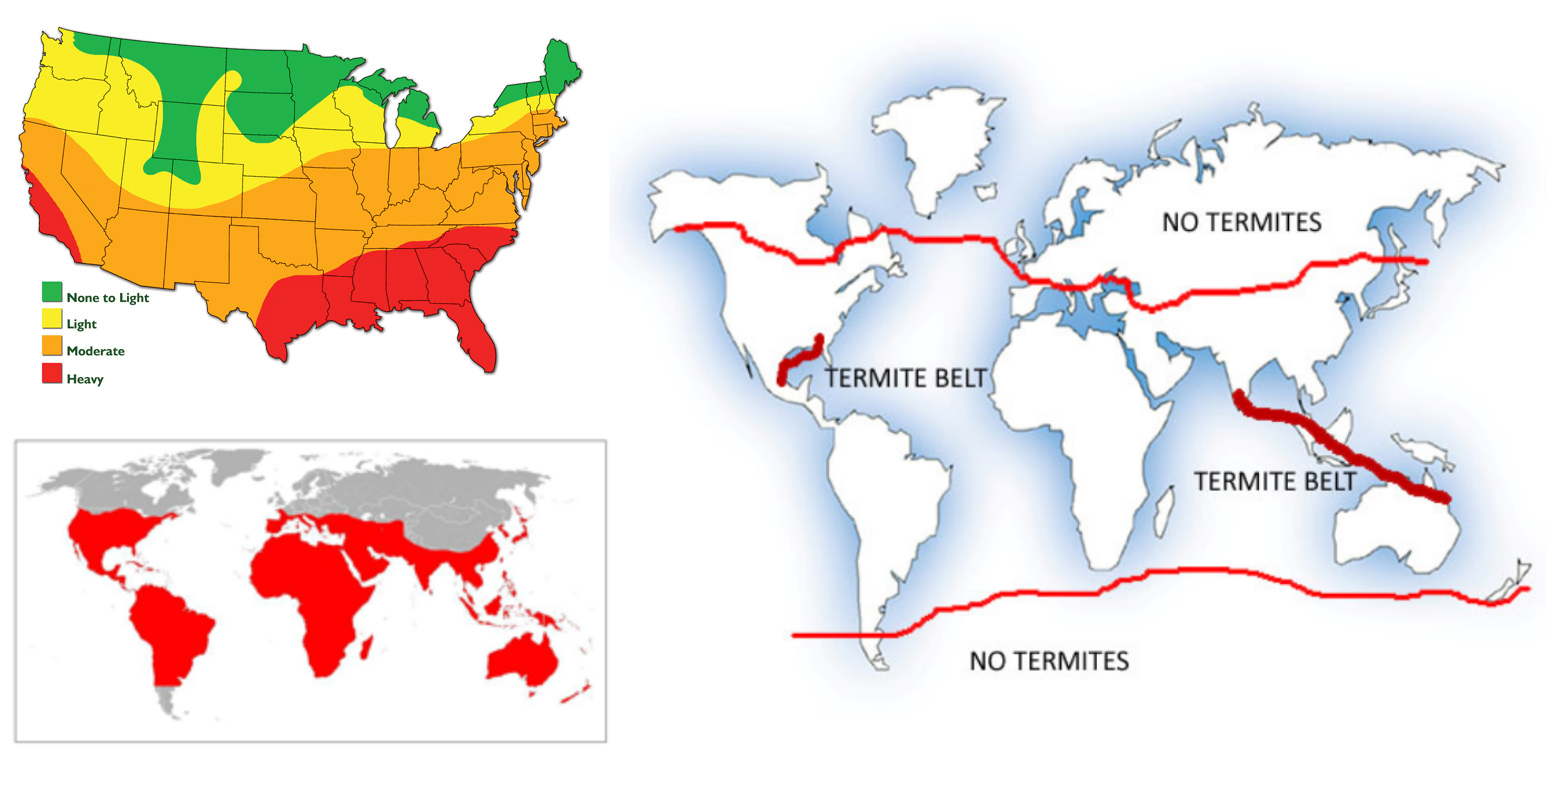 Geographical distribution of termites